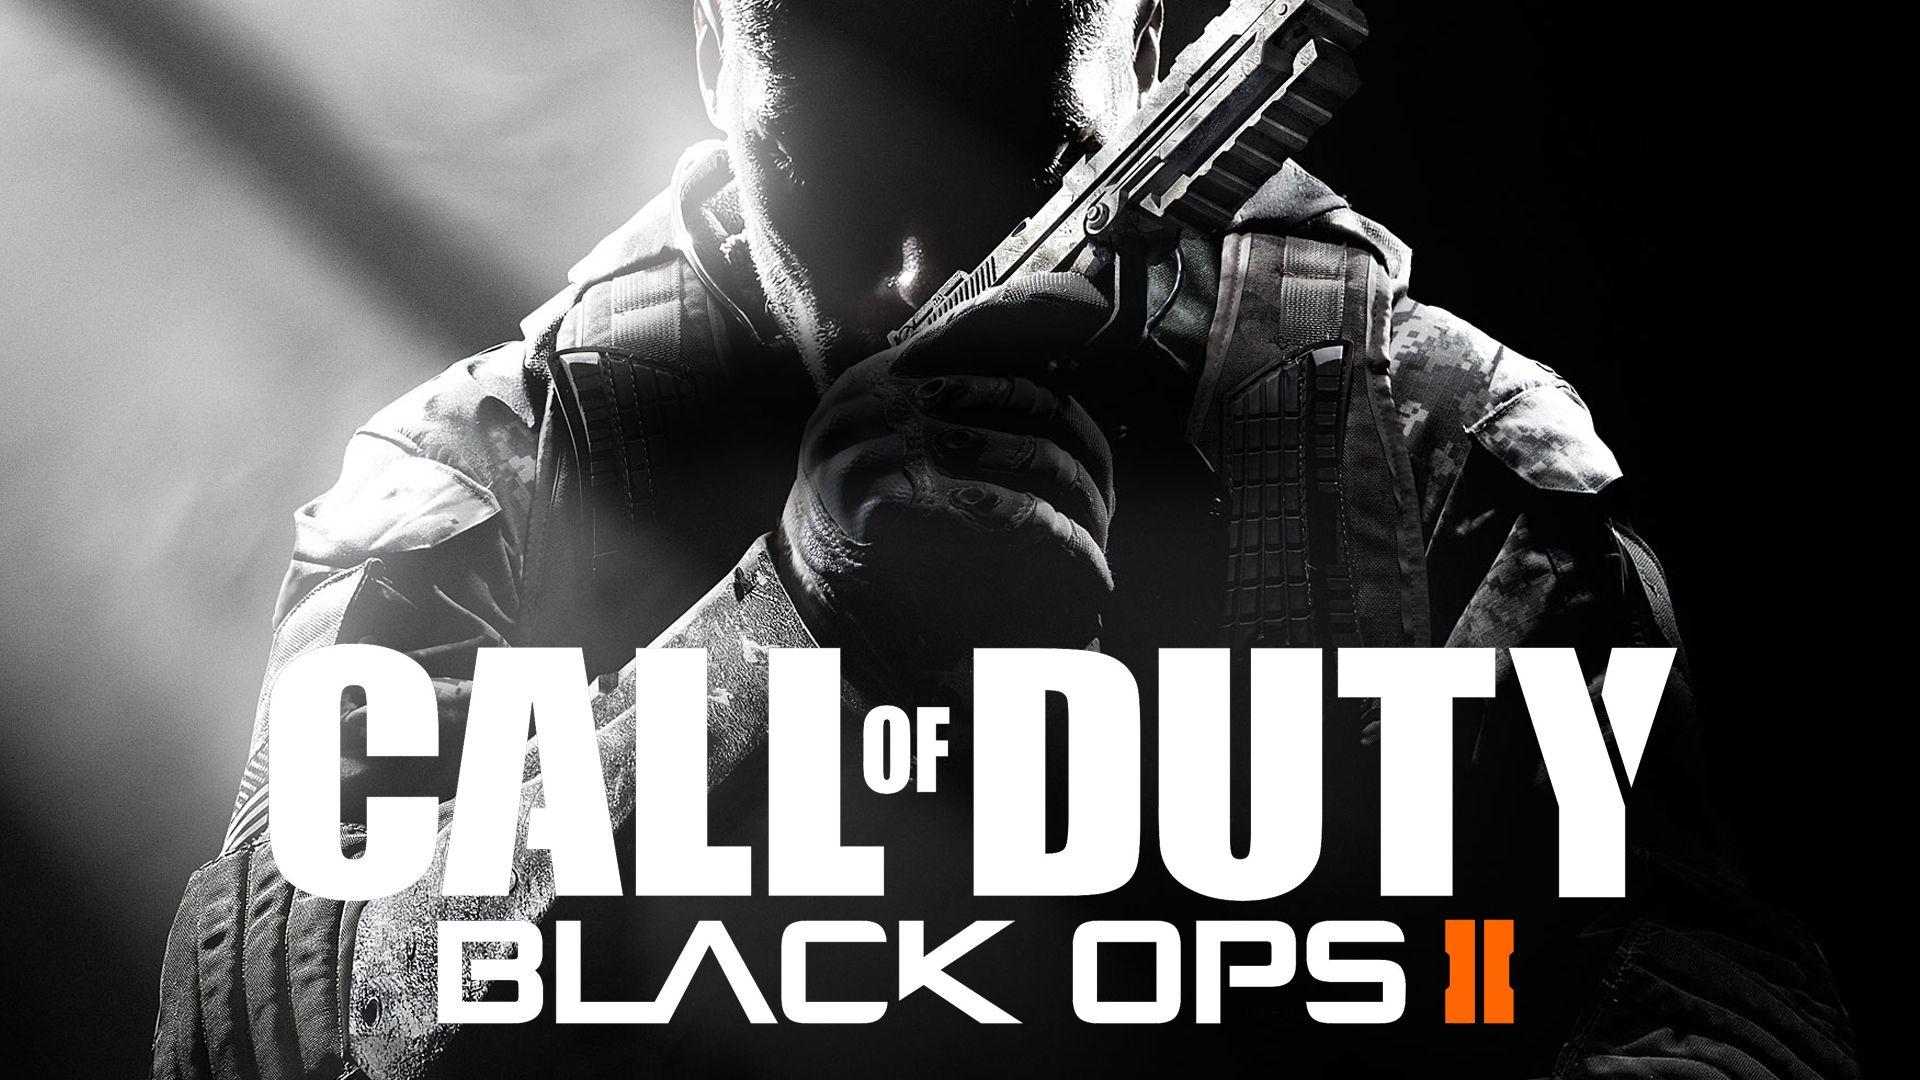 Black Ops 2 Wallpapers   4k HD Black Ops 2 Backgrounds on 1920x1080